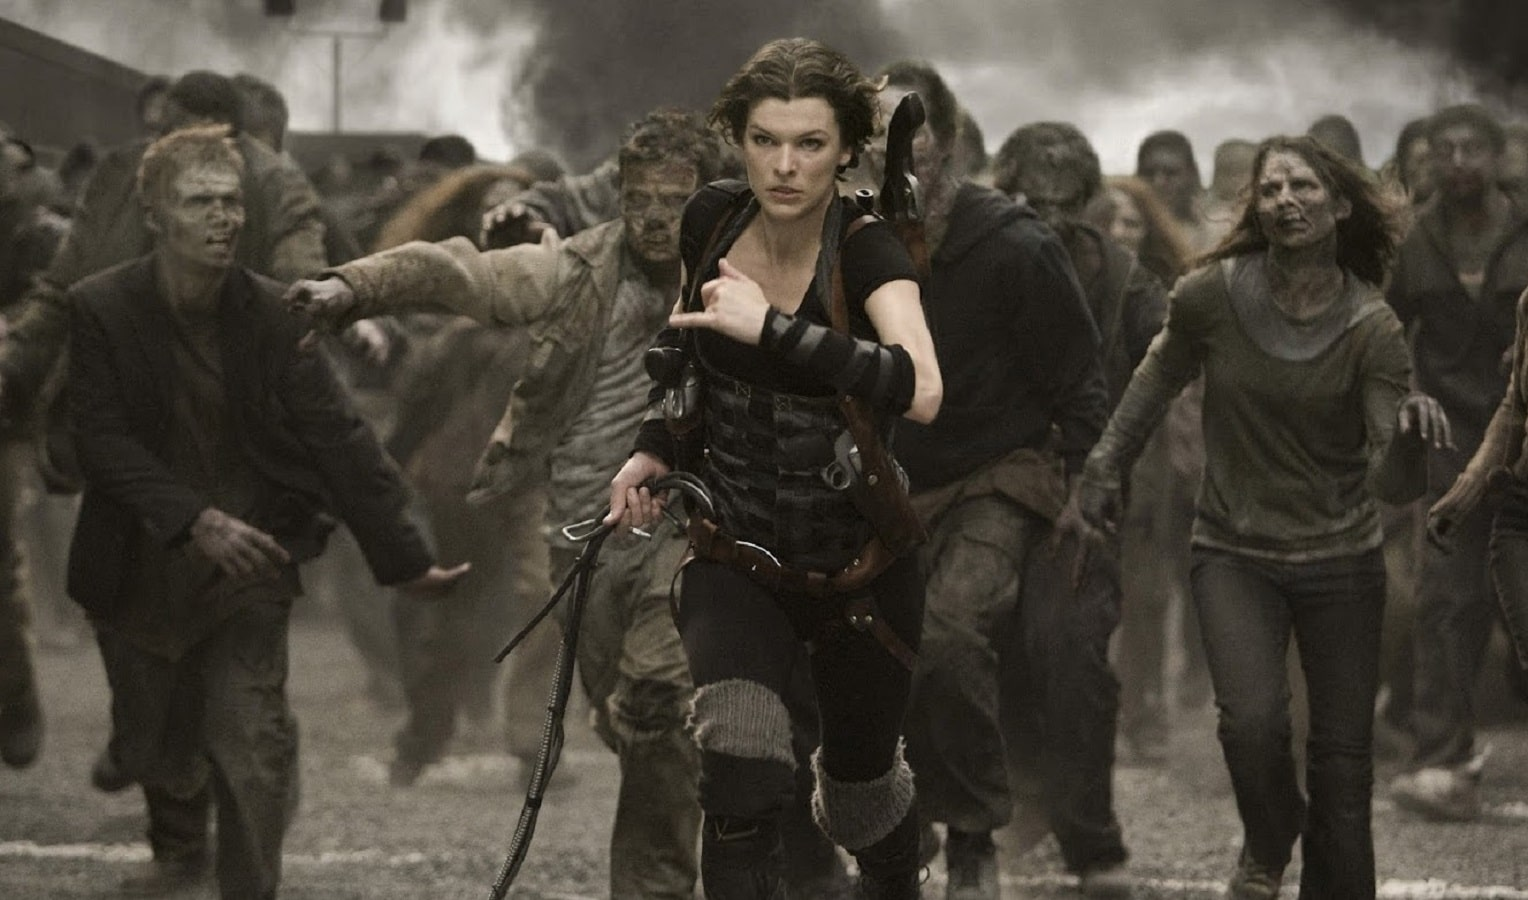 A new report claims Netflix is working on its own Resident Evil series